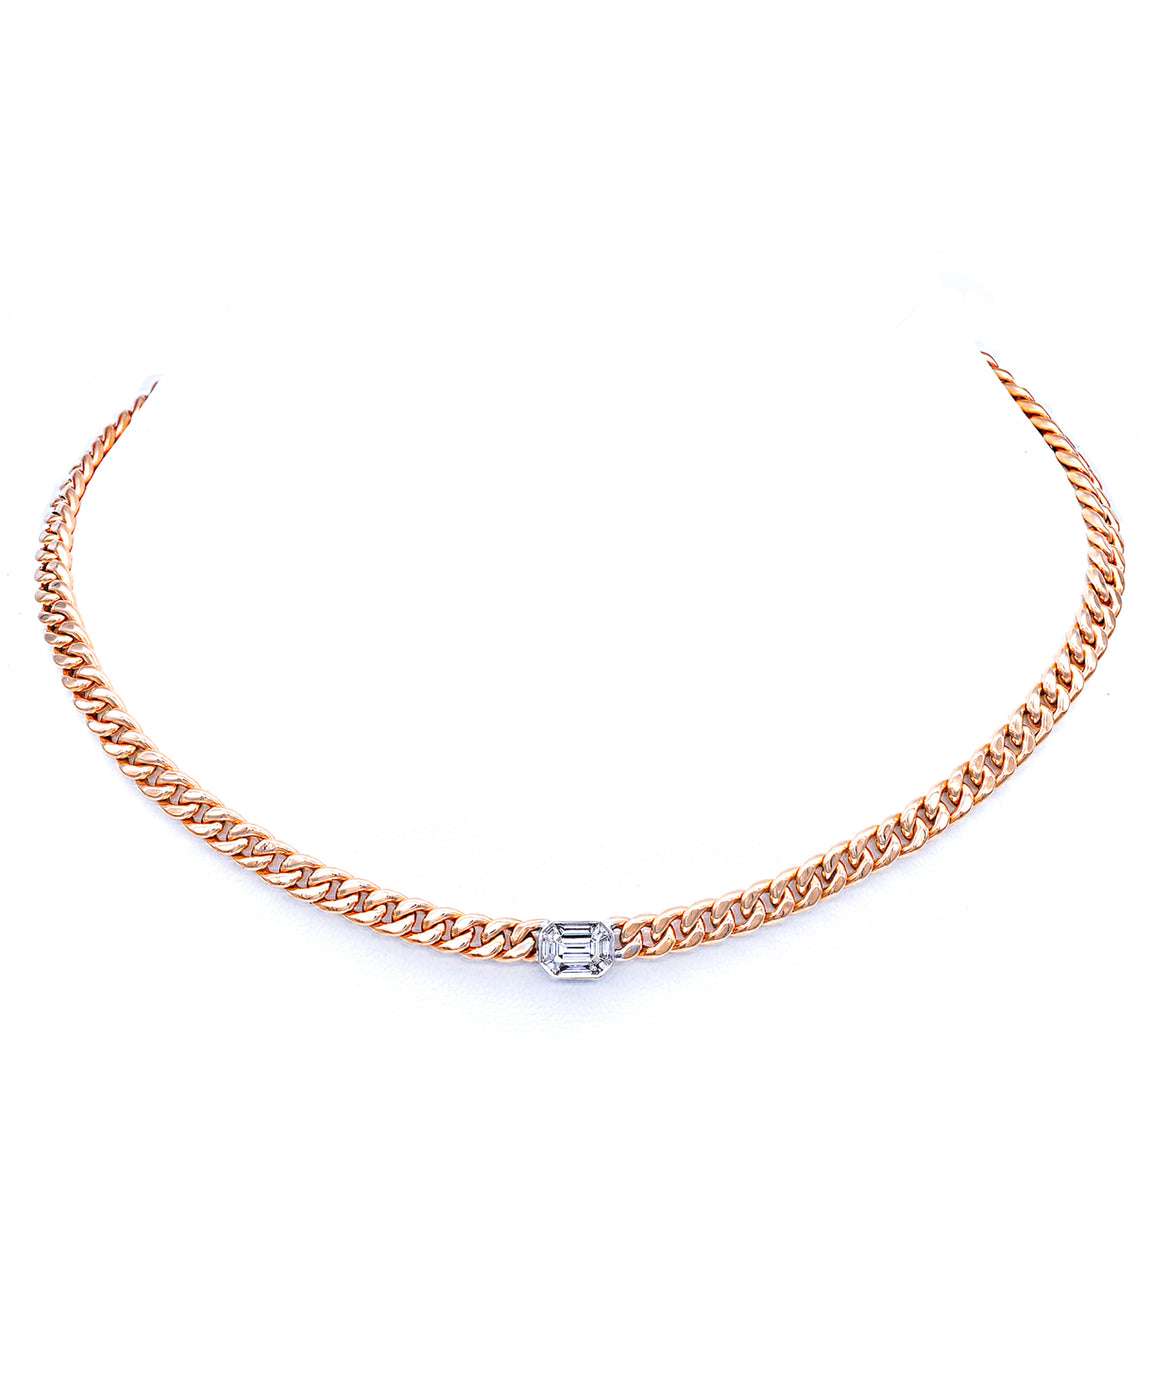 Rose gold necklace with diamond center